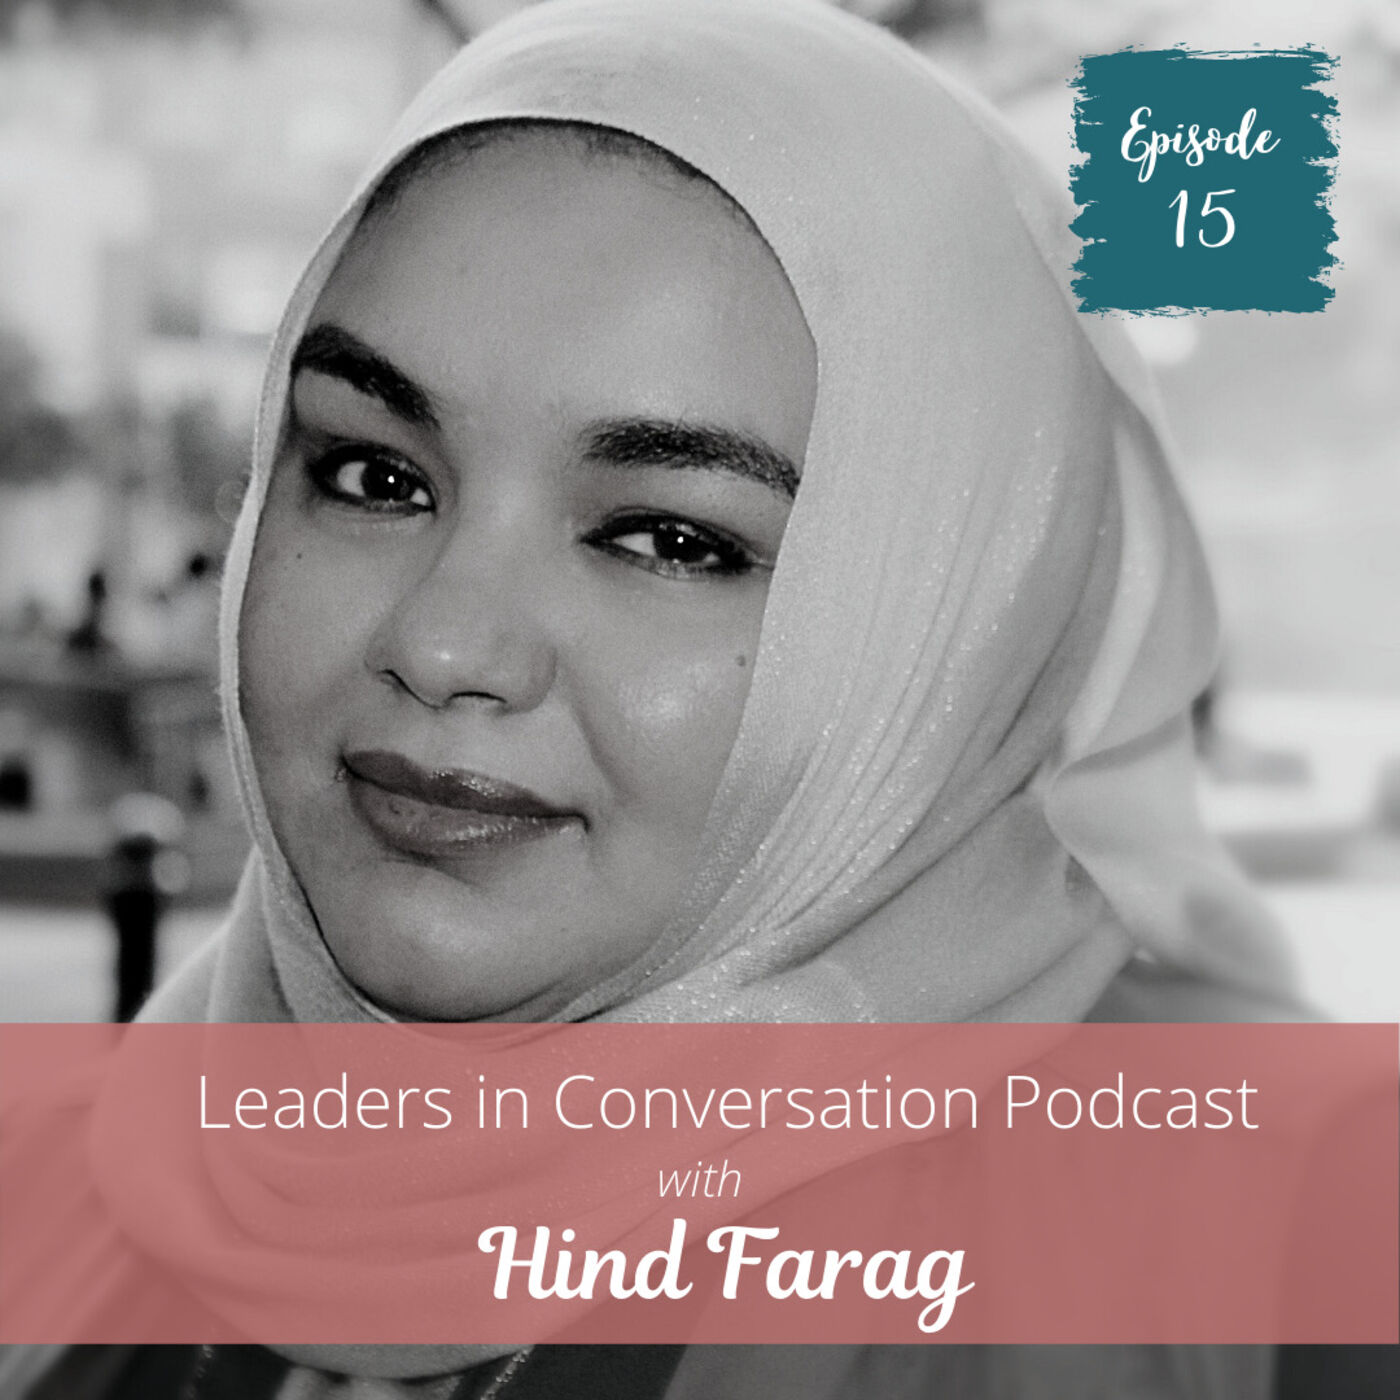 Anni Townend in Conversation with Hind Farag, Executive Coach and Strategy Consultant